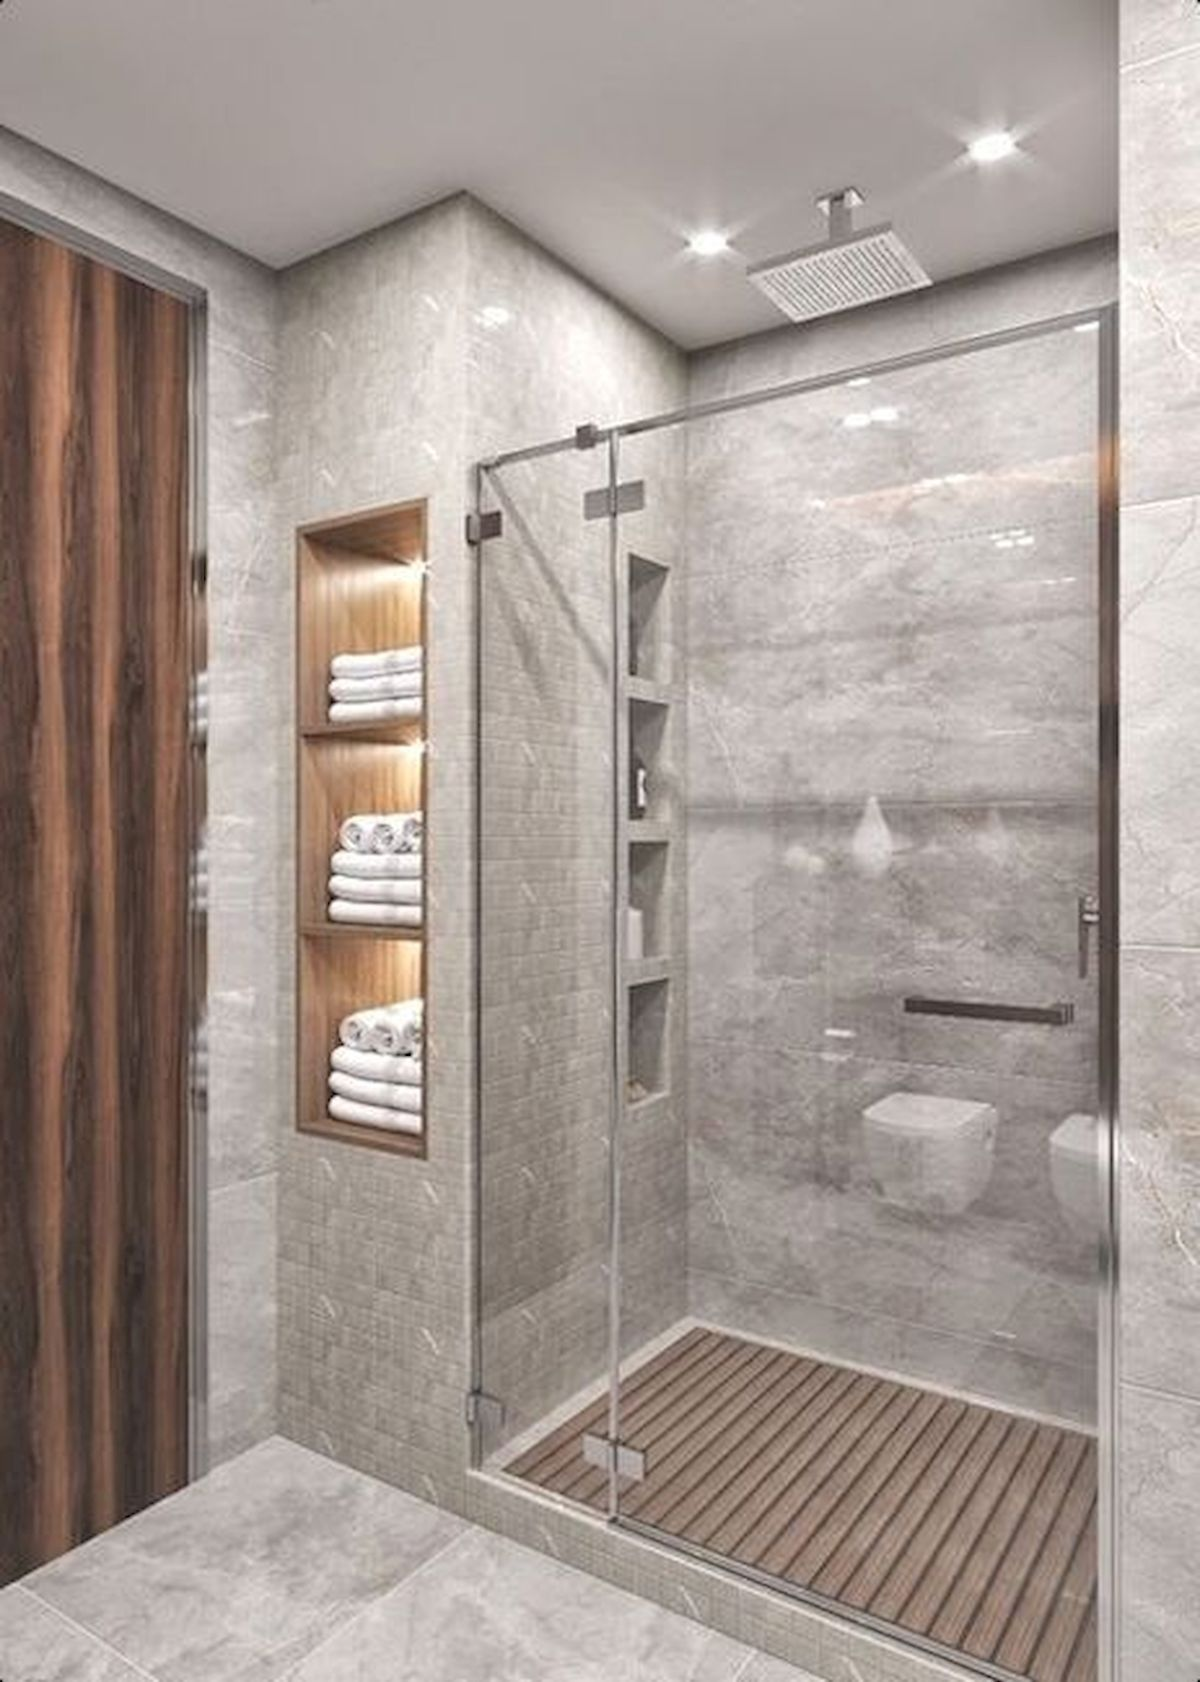 Best Of Modern Shower Ideas Small Bathrooms 50 Stunning Small Bathroom Makeover Ideas In 2020 Modern Master Bathroom Master Bathroom Design Small Master Bathroom